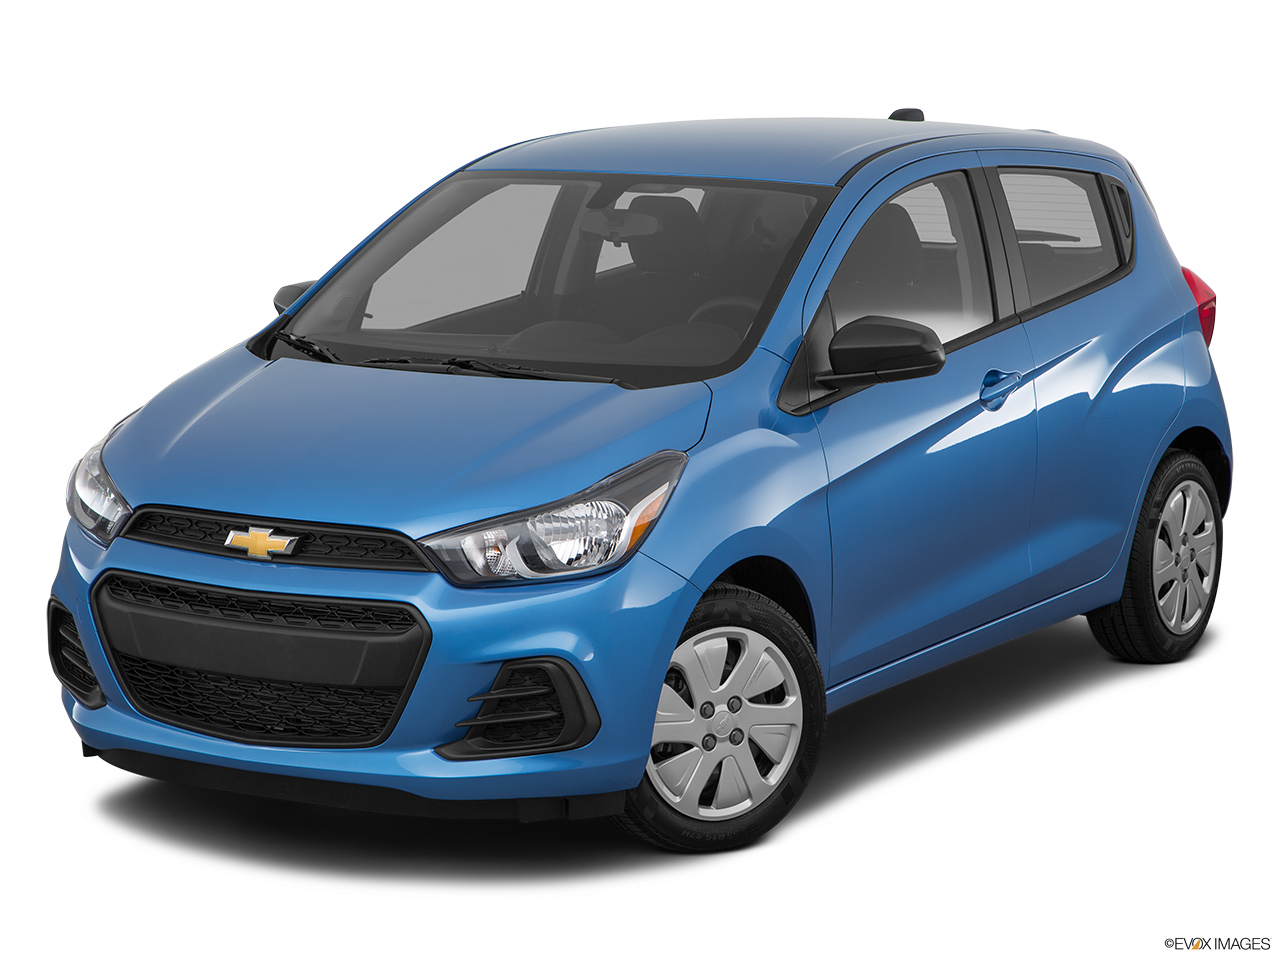 2017 chevrolet spark prices in uae gulf specs reviews for dubai abu dhabi and sharjah. Black Bedroom Furniture Sets. Home Design Ideas